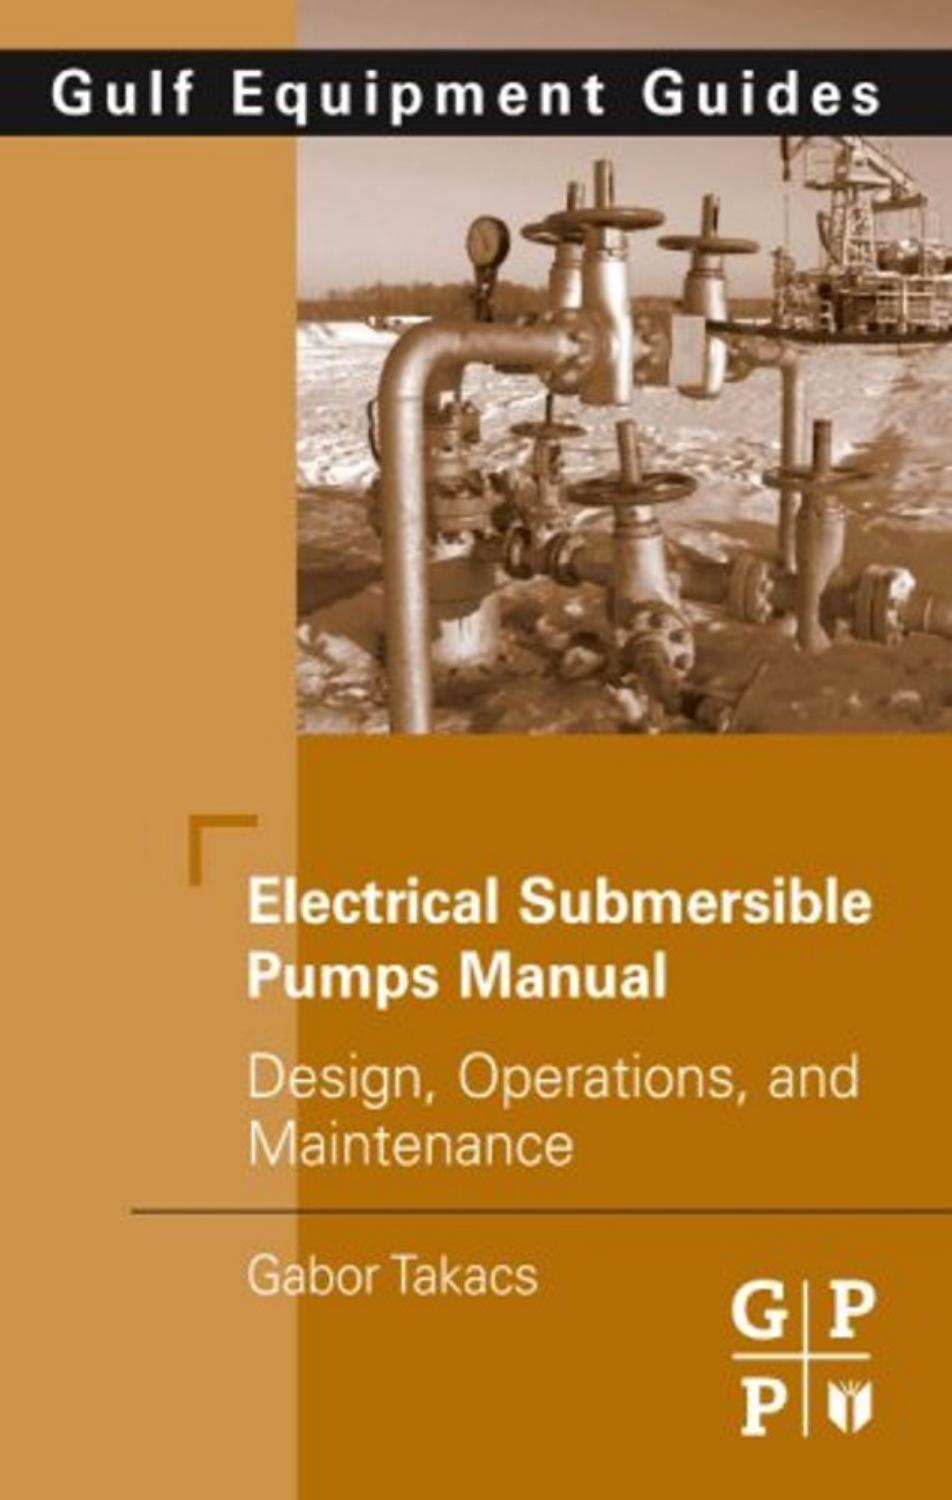 hight resolution of electrical submersible pumps manual design operations and maintenance